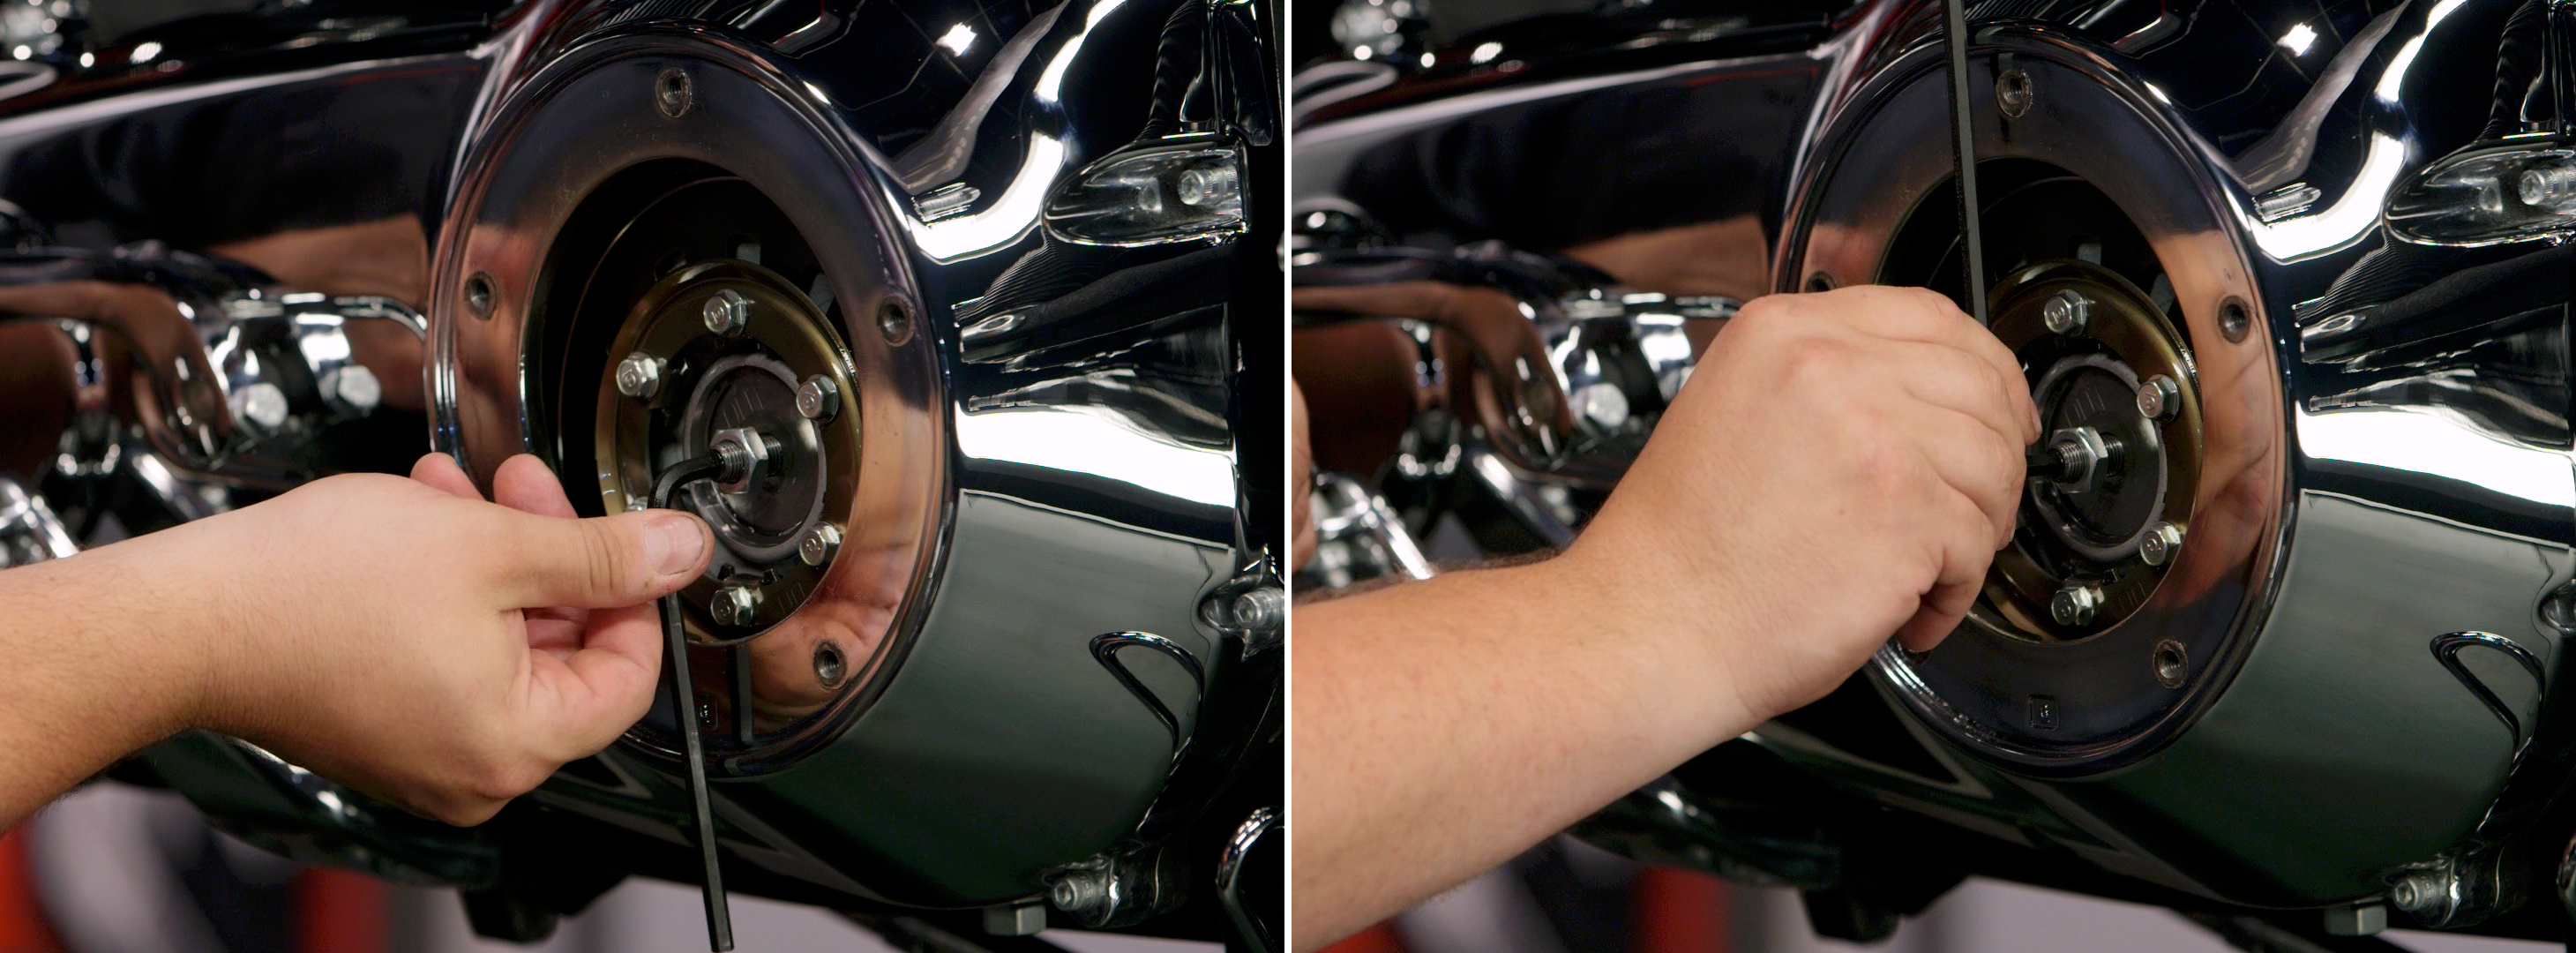 How to adjust a motorcycle clutch on a Harley Big Twin